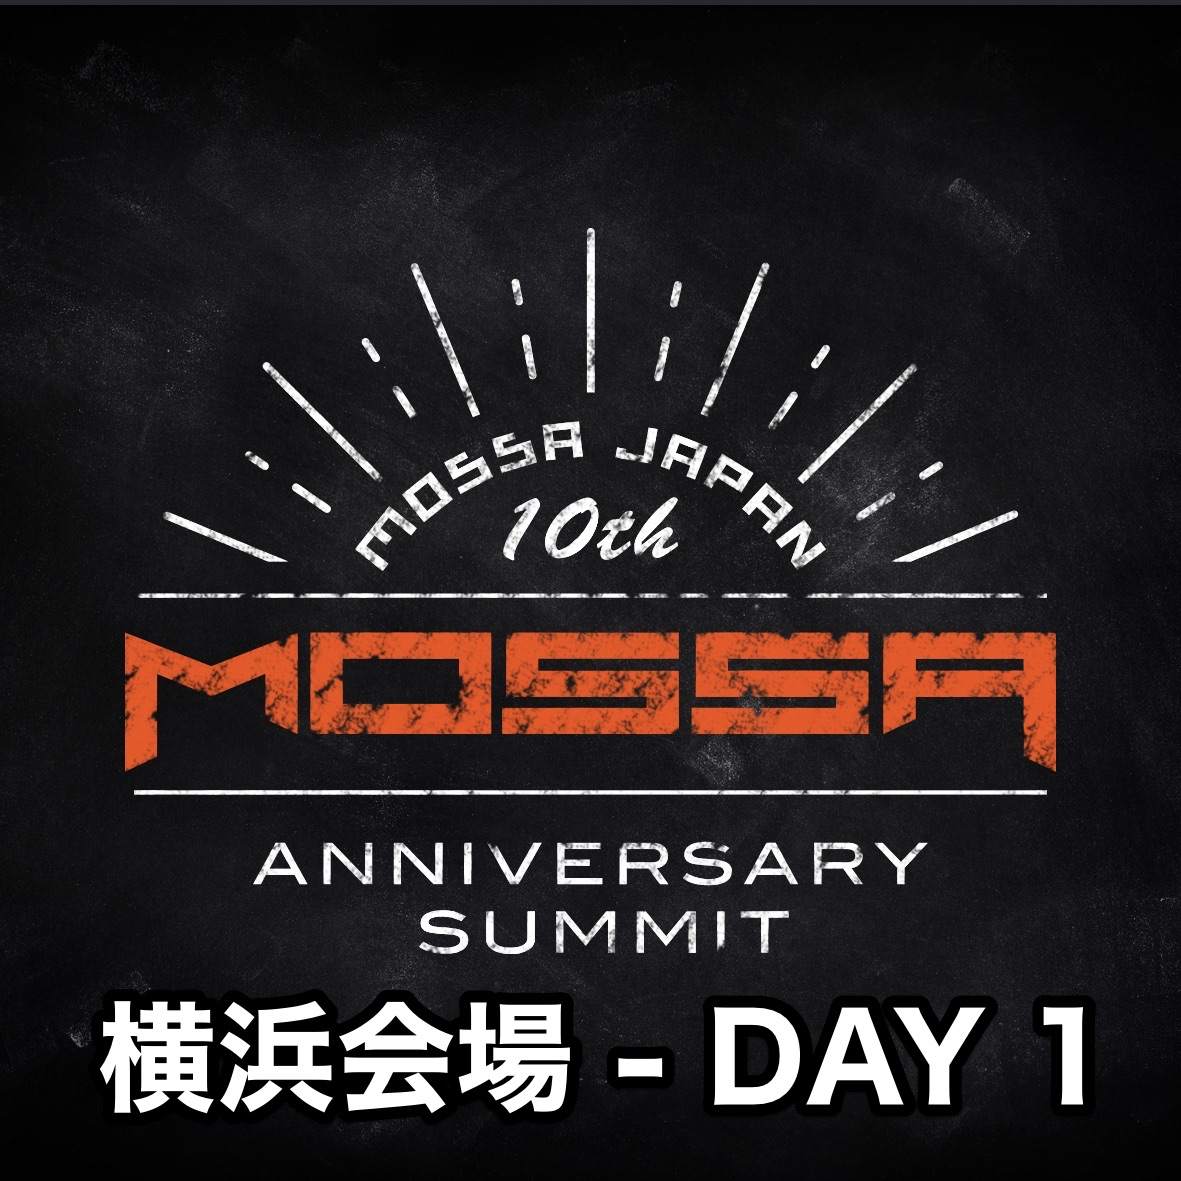 【関東(横浜)会場】DAY 1 ▶イベントプログラム・Meet & Greet Mixer 《MOSSA Japan 10th Anniversary SUMMIT》